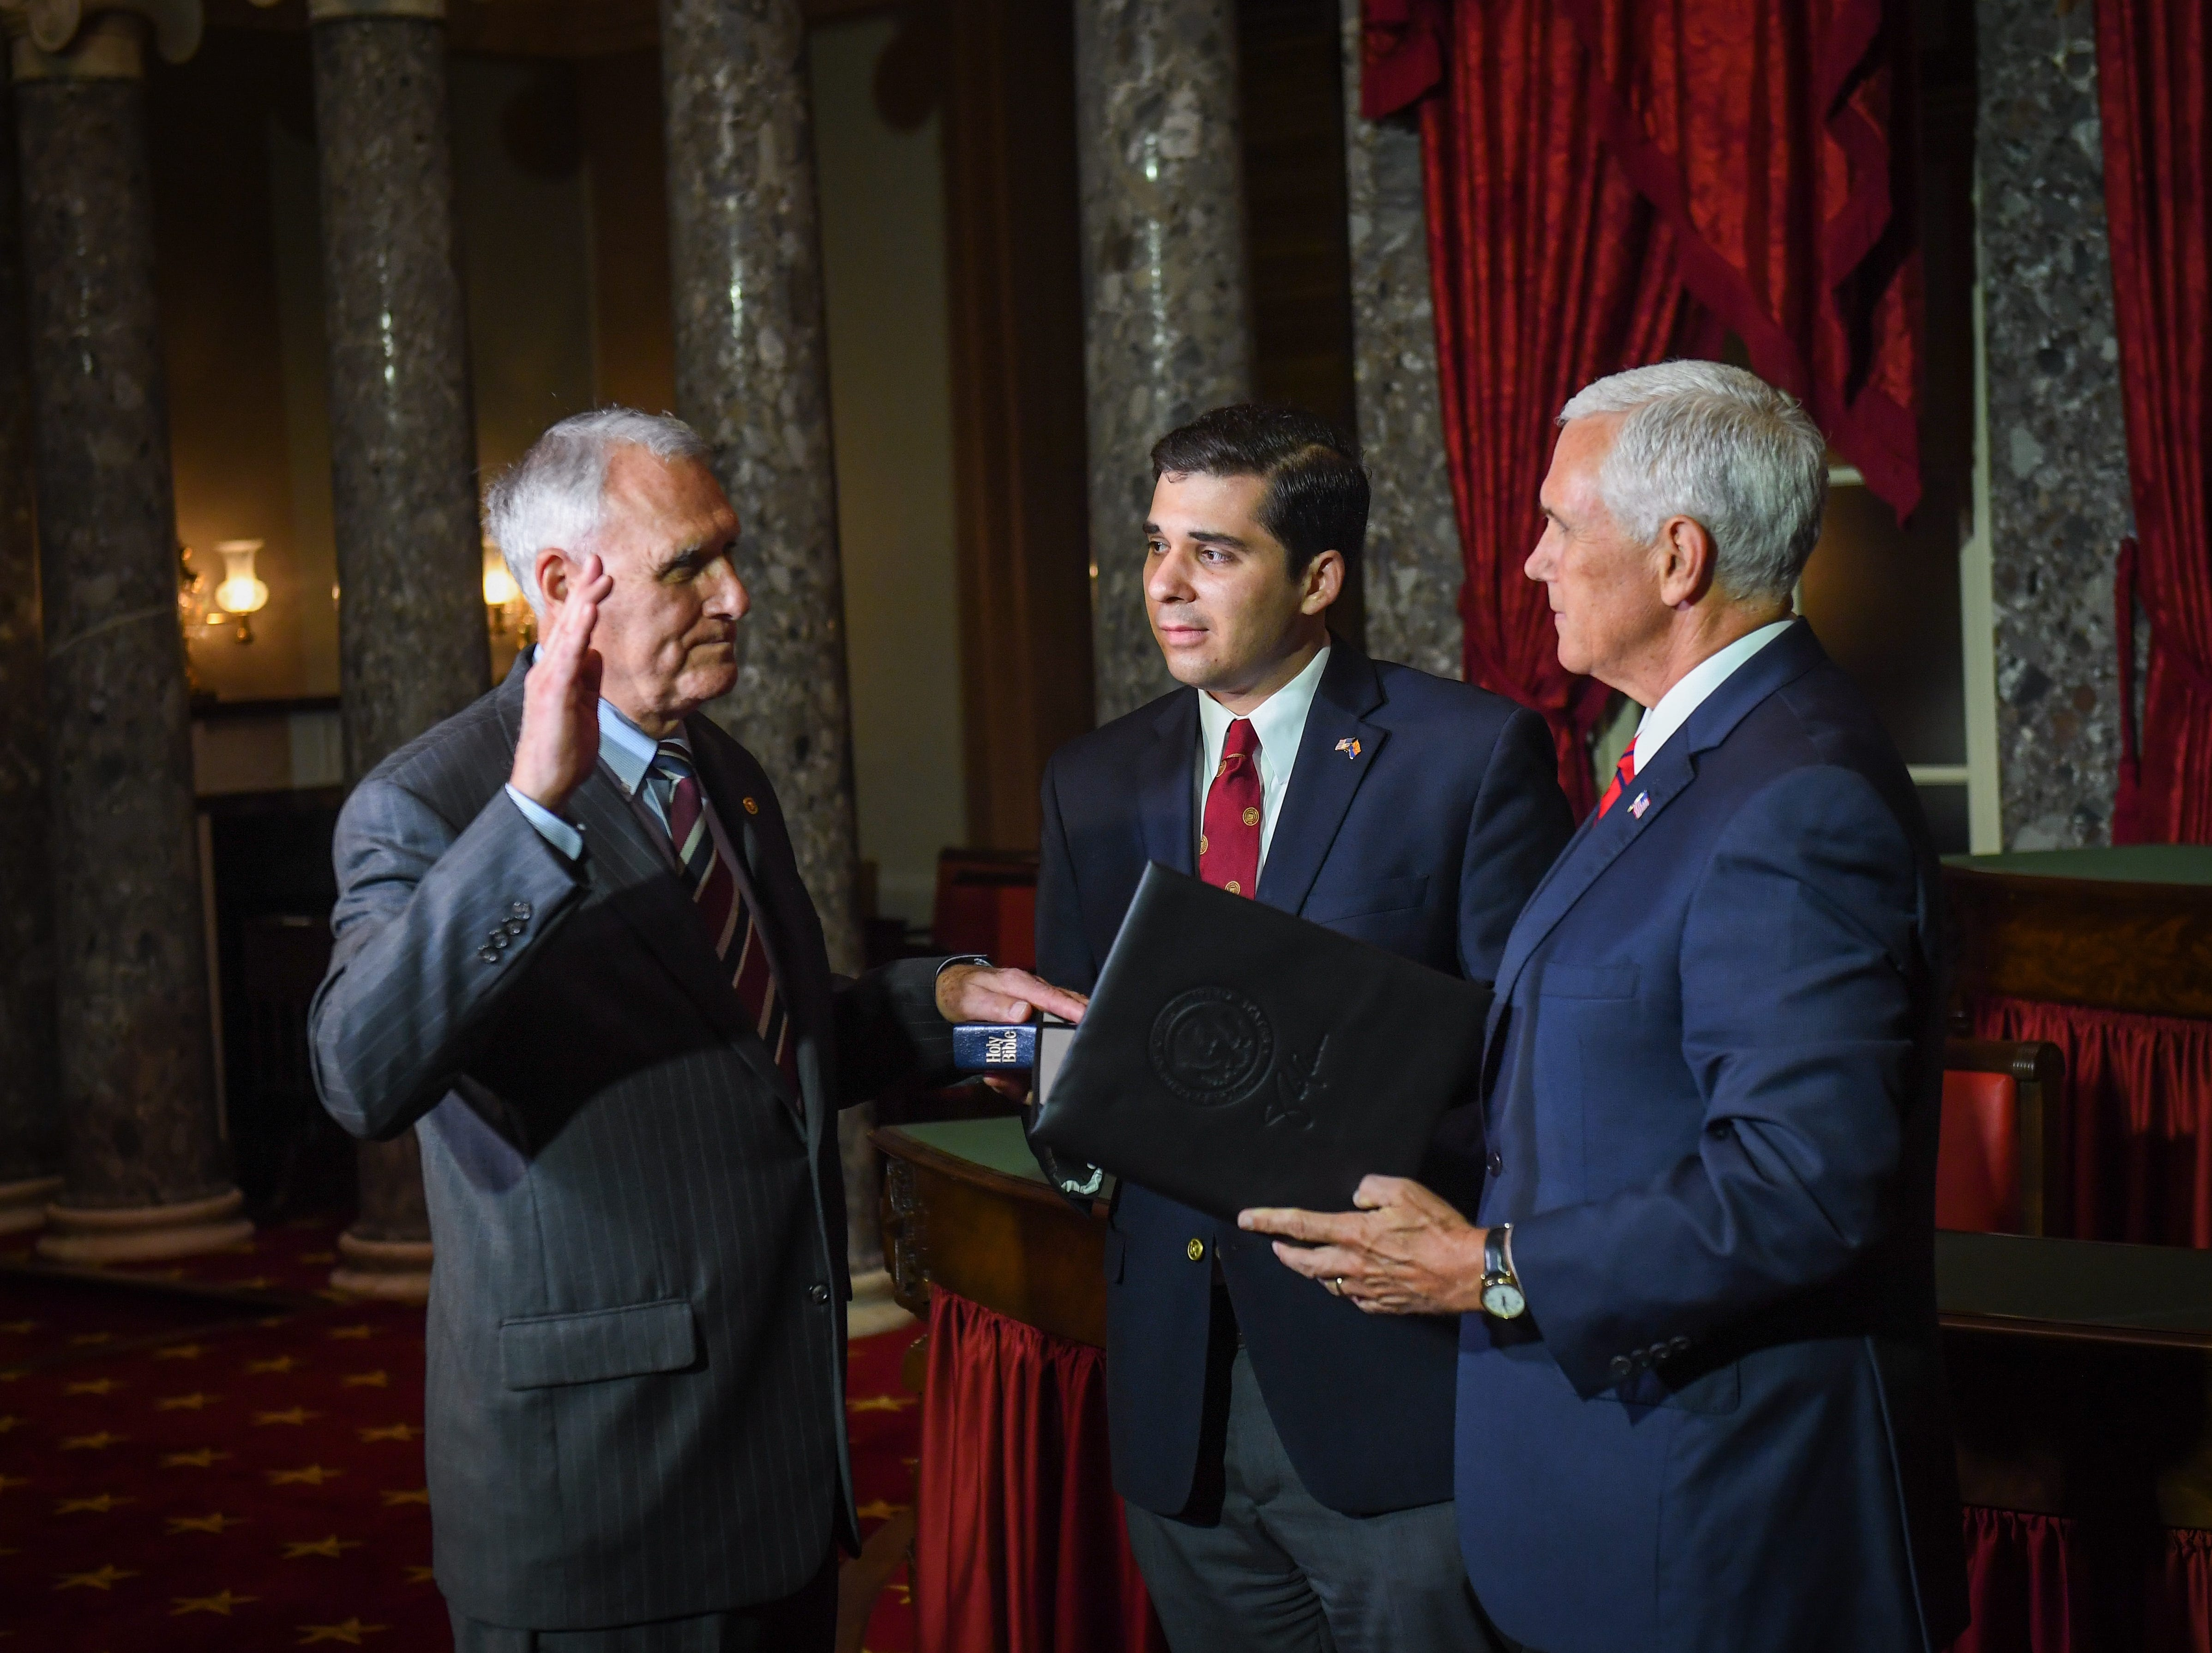 Jon Kyl was sworn-in by Vice President Mike Pence during a reenactment ceremony on Sept. 5, 2018 in Washington along with Kyl's grandson Christopher Gavin. Sen. Kyl was officially sworn-in during a ceremony in the Senate Chamber earlier in the day.